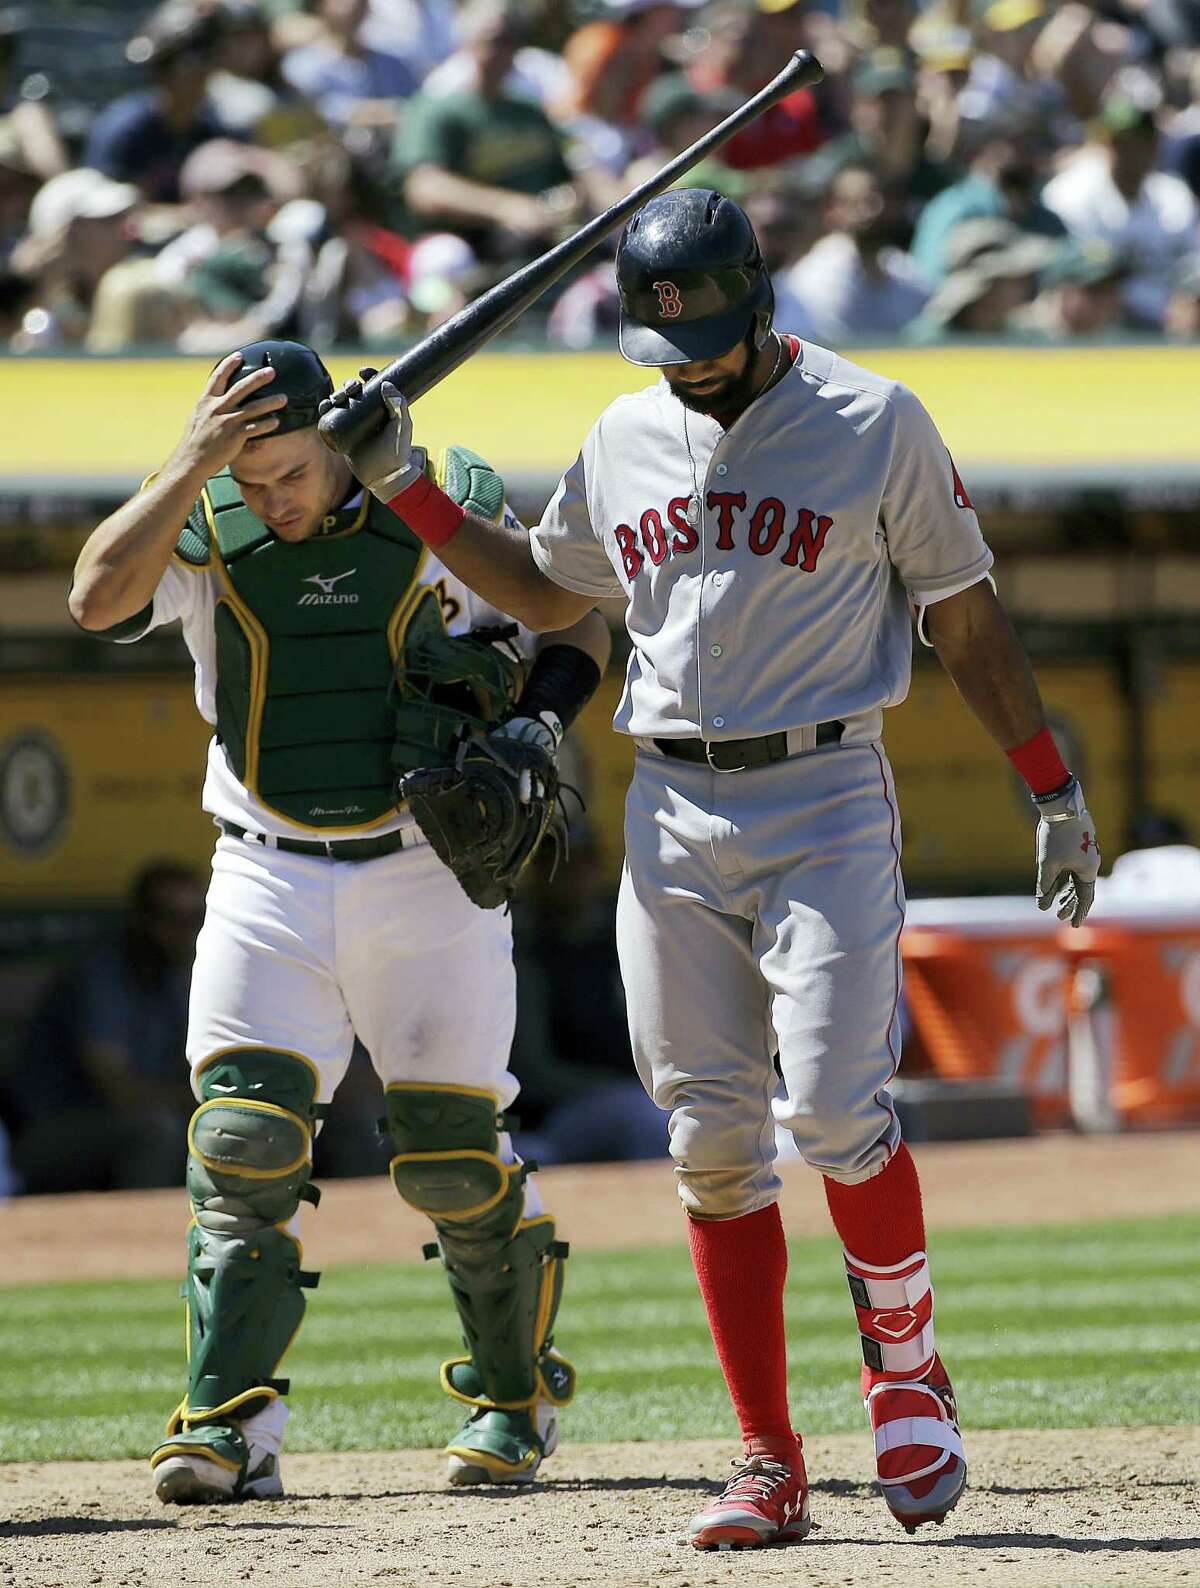 The Red Sox's Chris Young, right, reacts after striking out in the sixth inning Saturday.